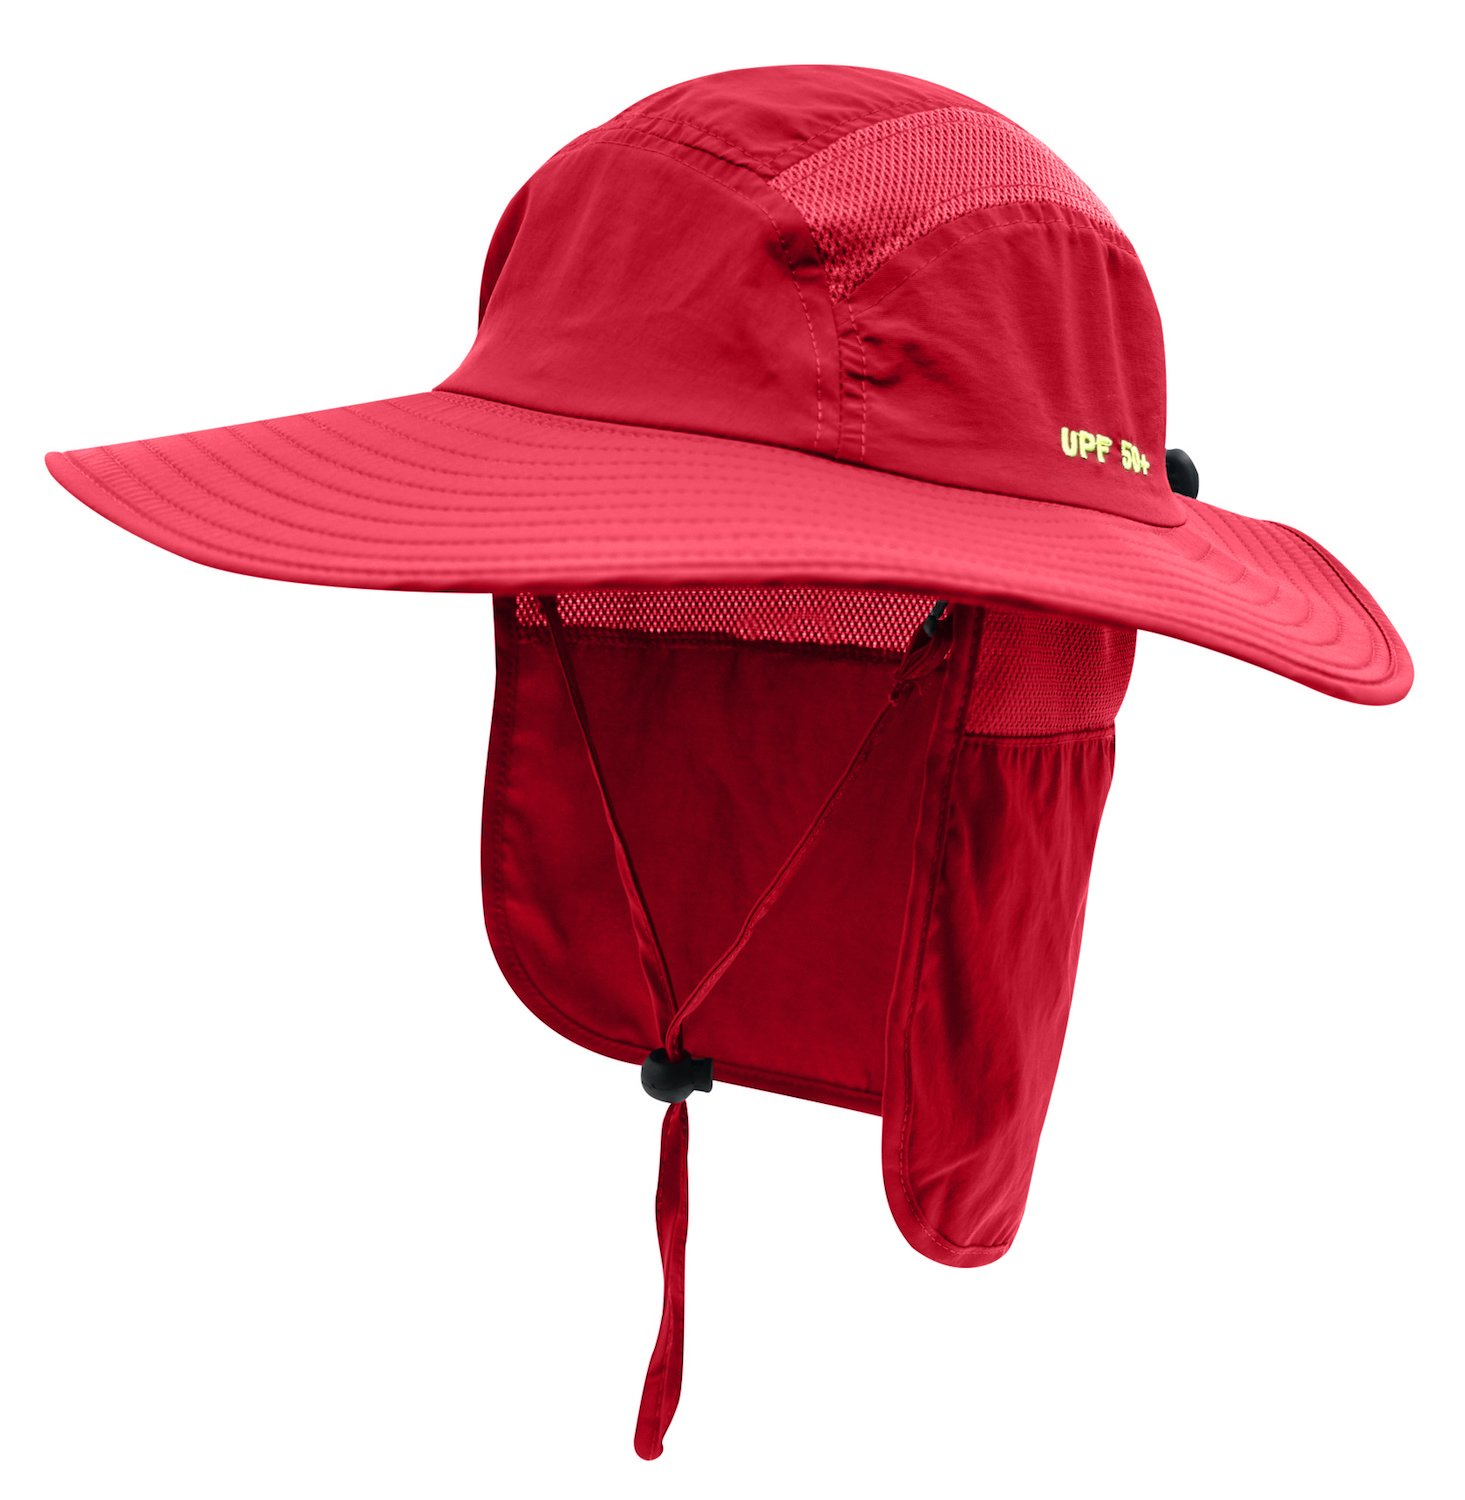 Home Prefer Adult UPF 50+ Sun Protection Cap Wide Brim Fishing Hat with Neck Flap Red